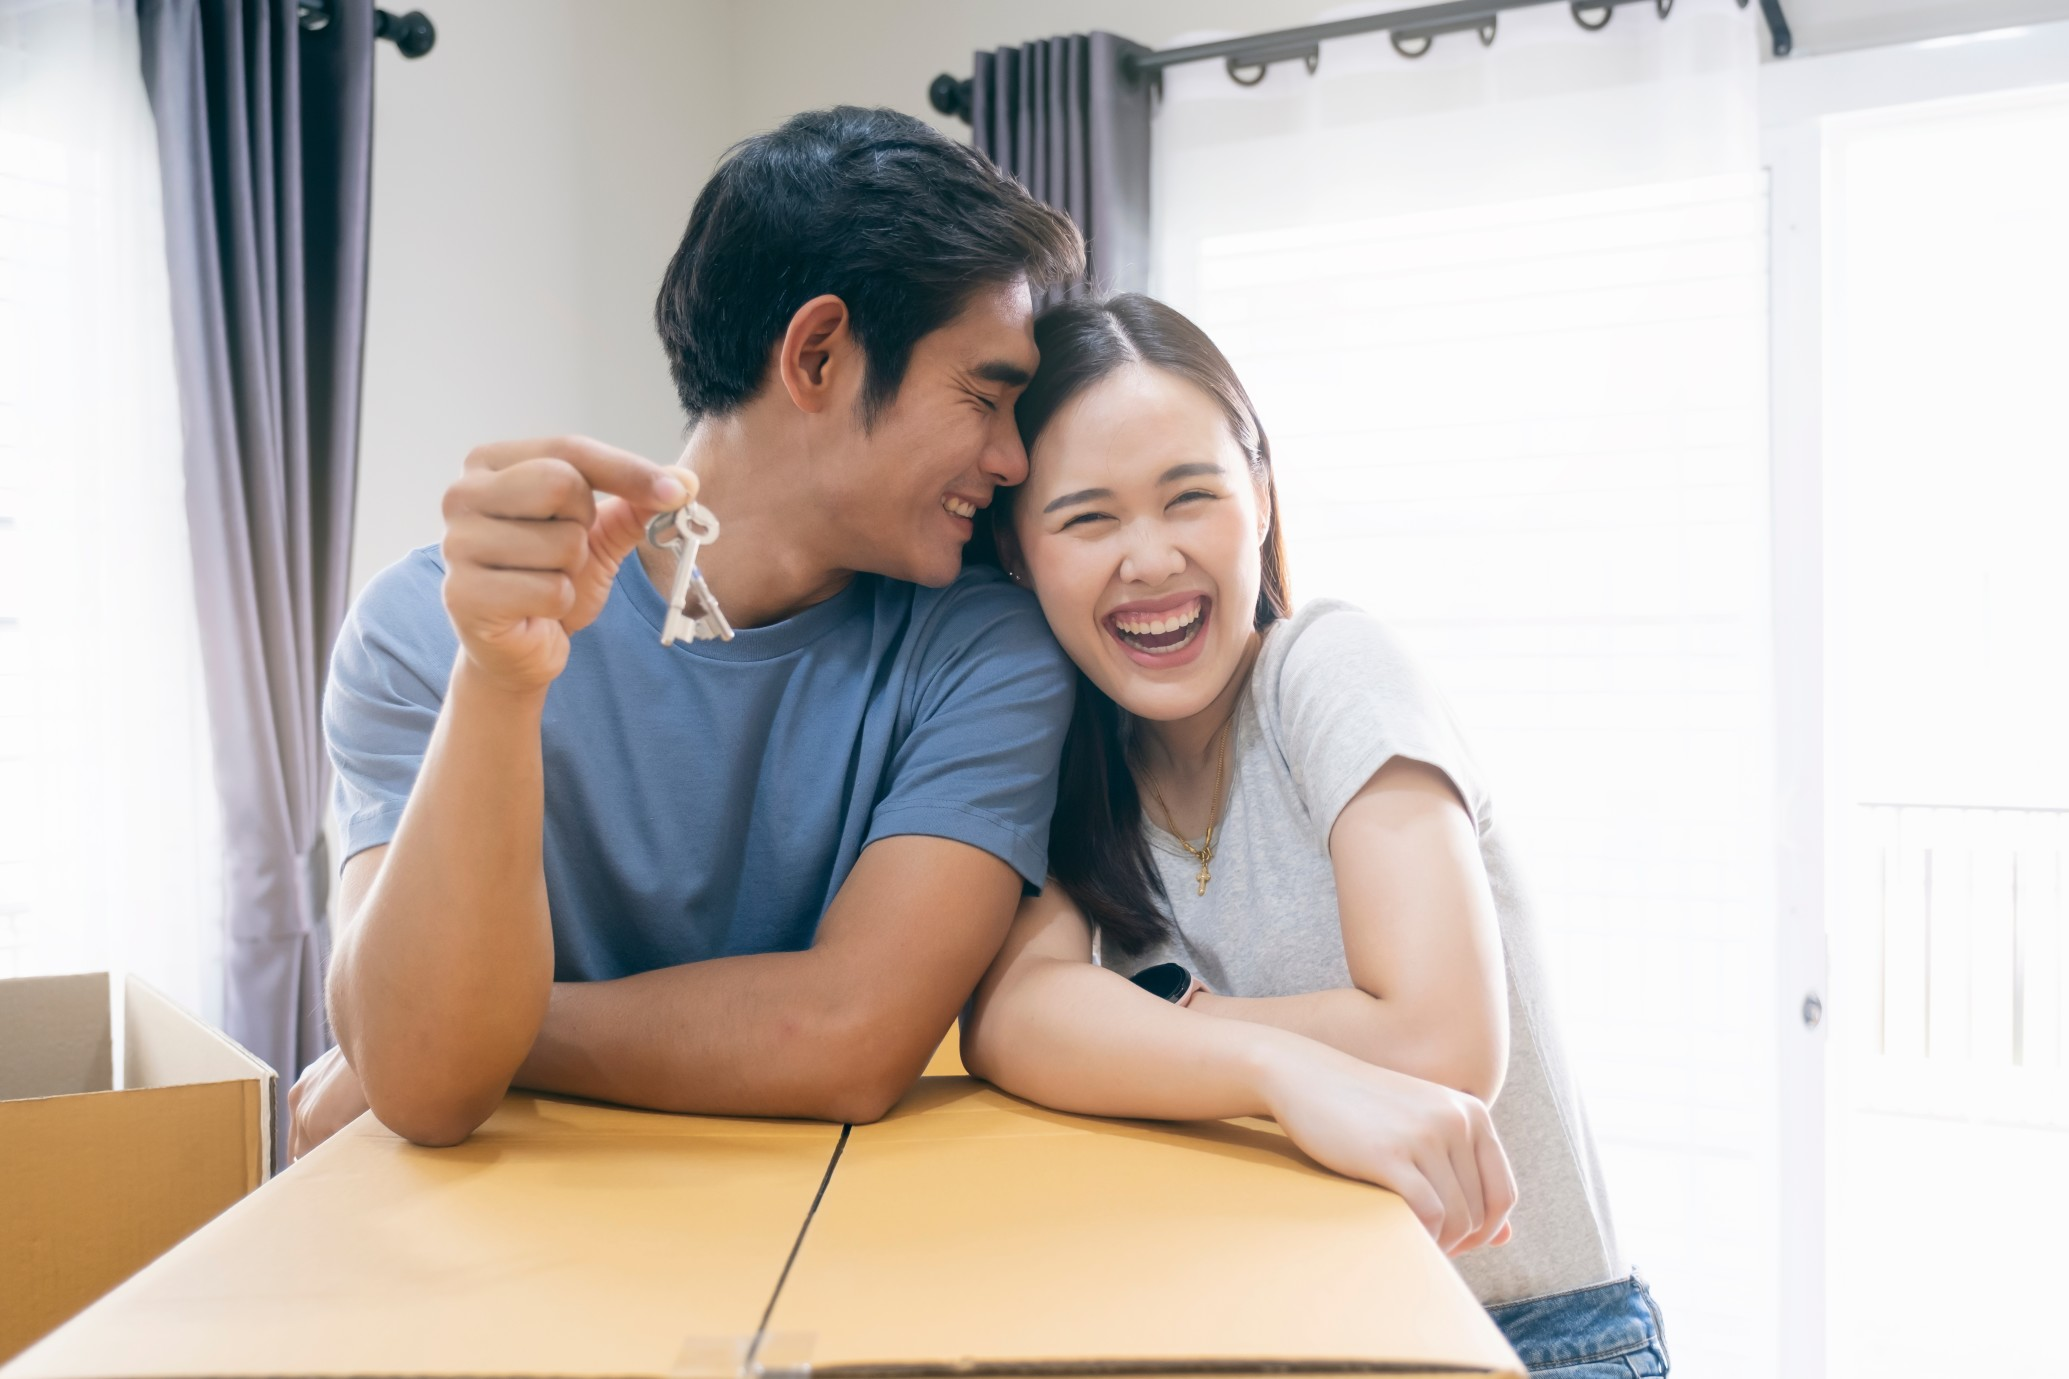 happy young couple enjoying together moving in a new house new house at moving | Bogart Wealth